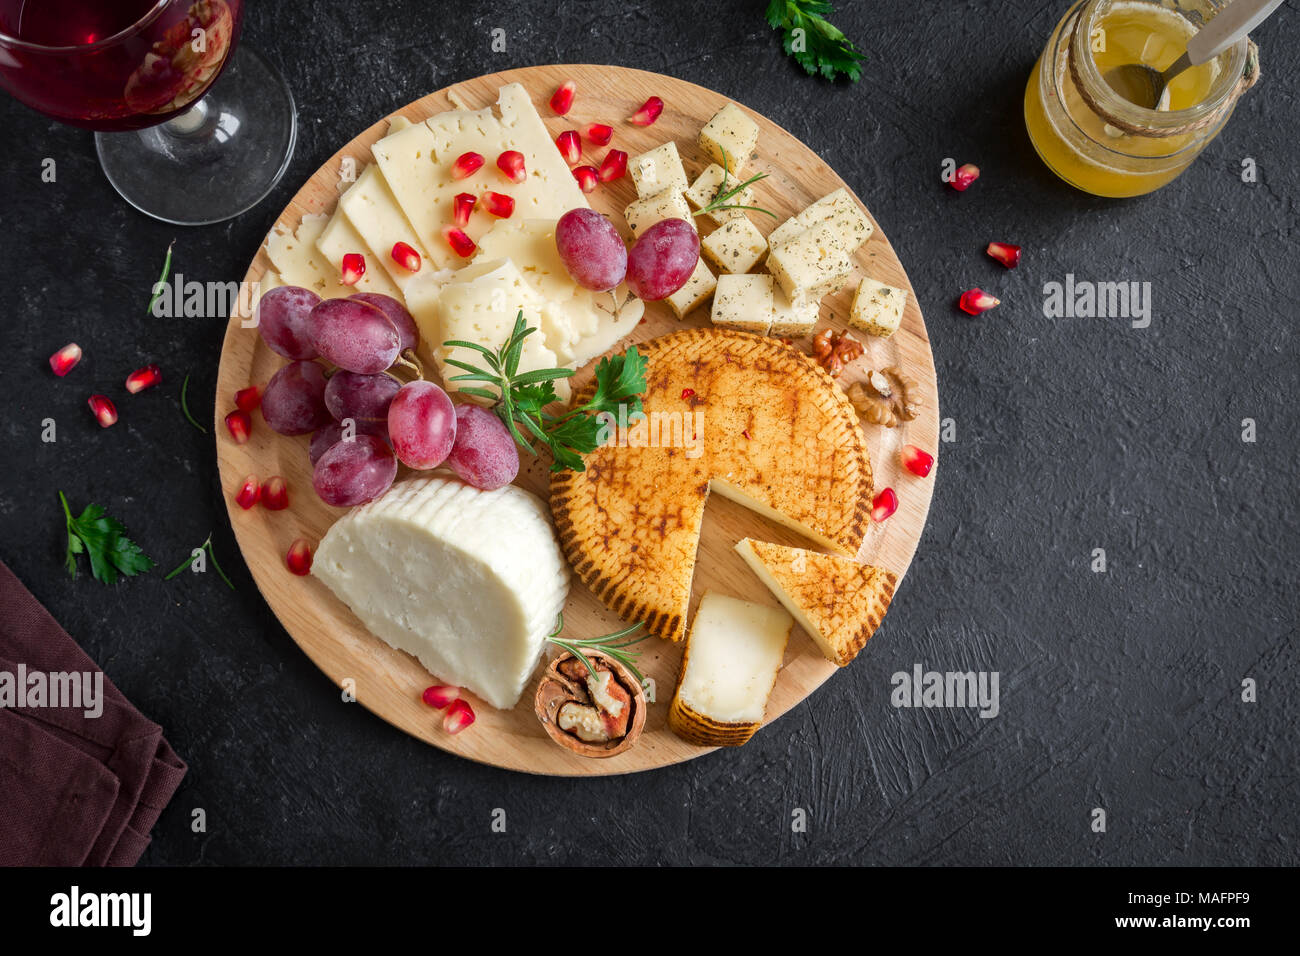 Cheese Platter With Assorted Cheeses Grapes Nuts Over Black Background Copy Space Italian Cheese And Fruit Platter With Honey And Wine Stock Photo Alamy